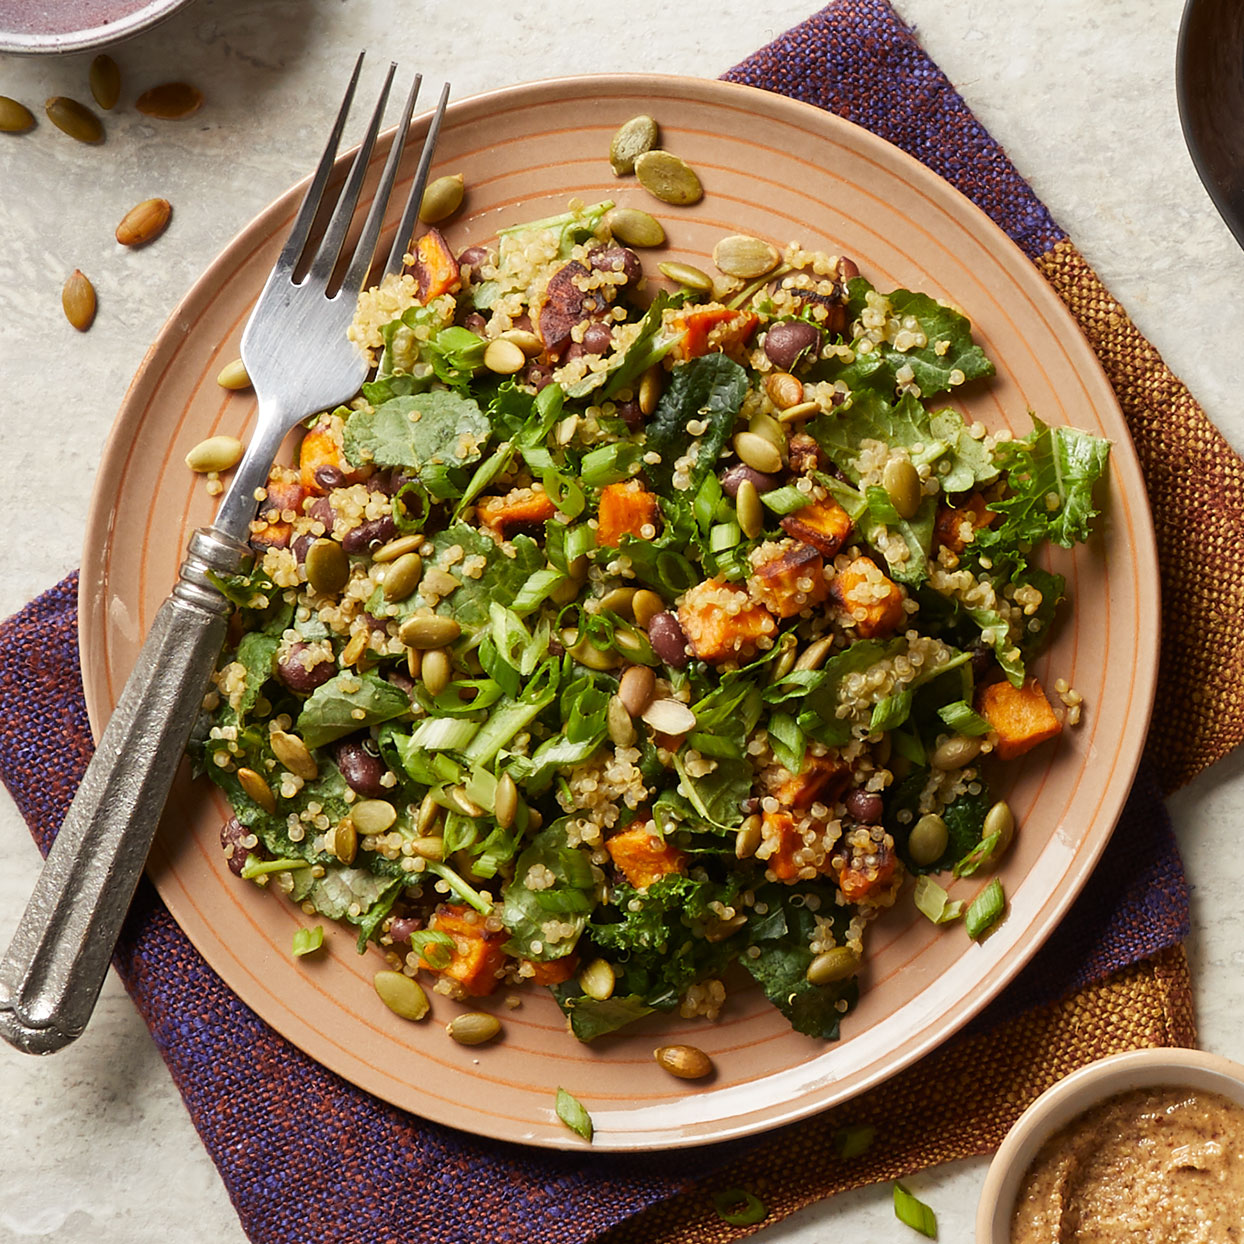 Winter Kale & Quinoa Salad with Avocado